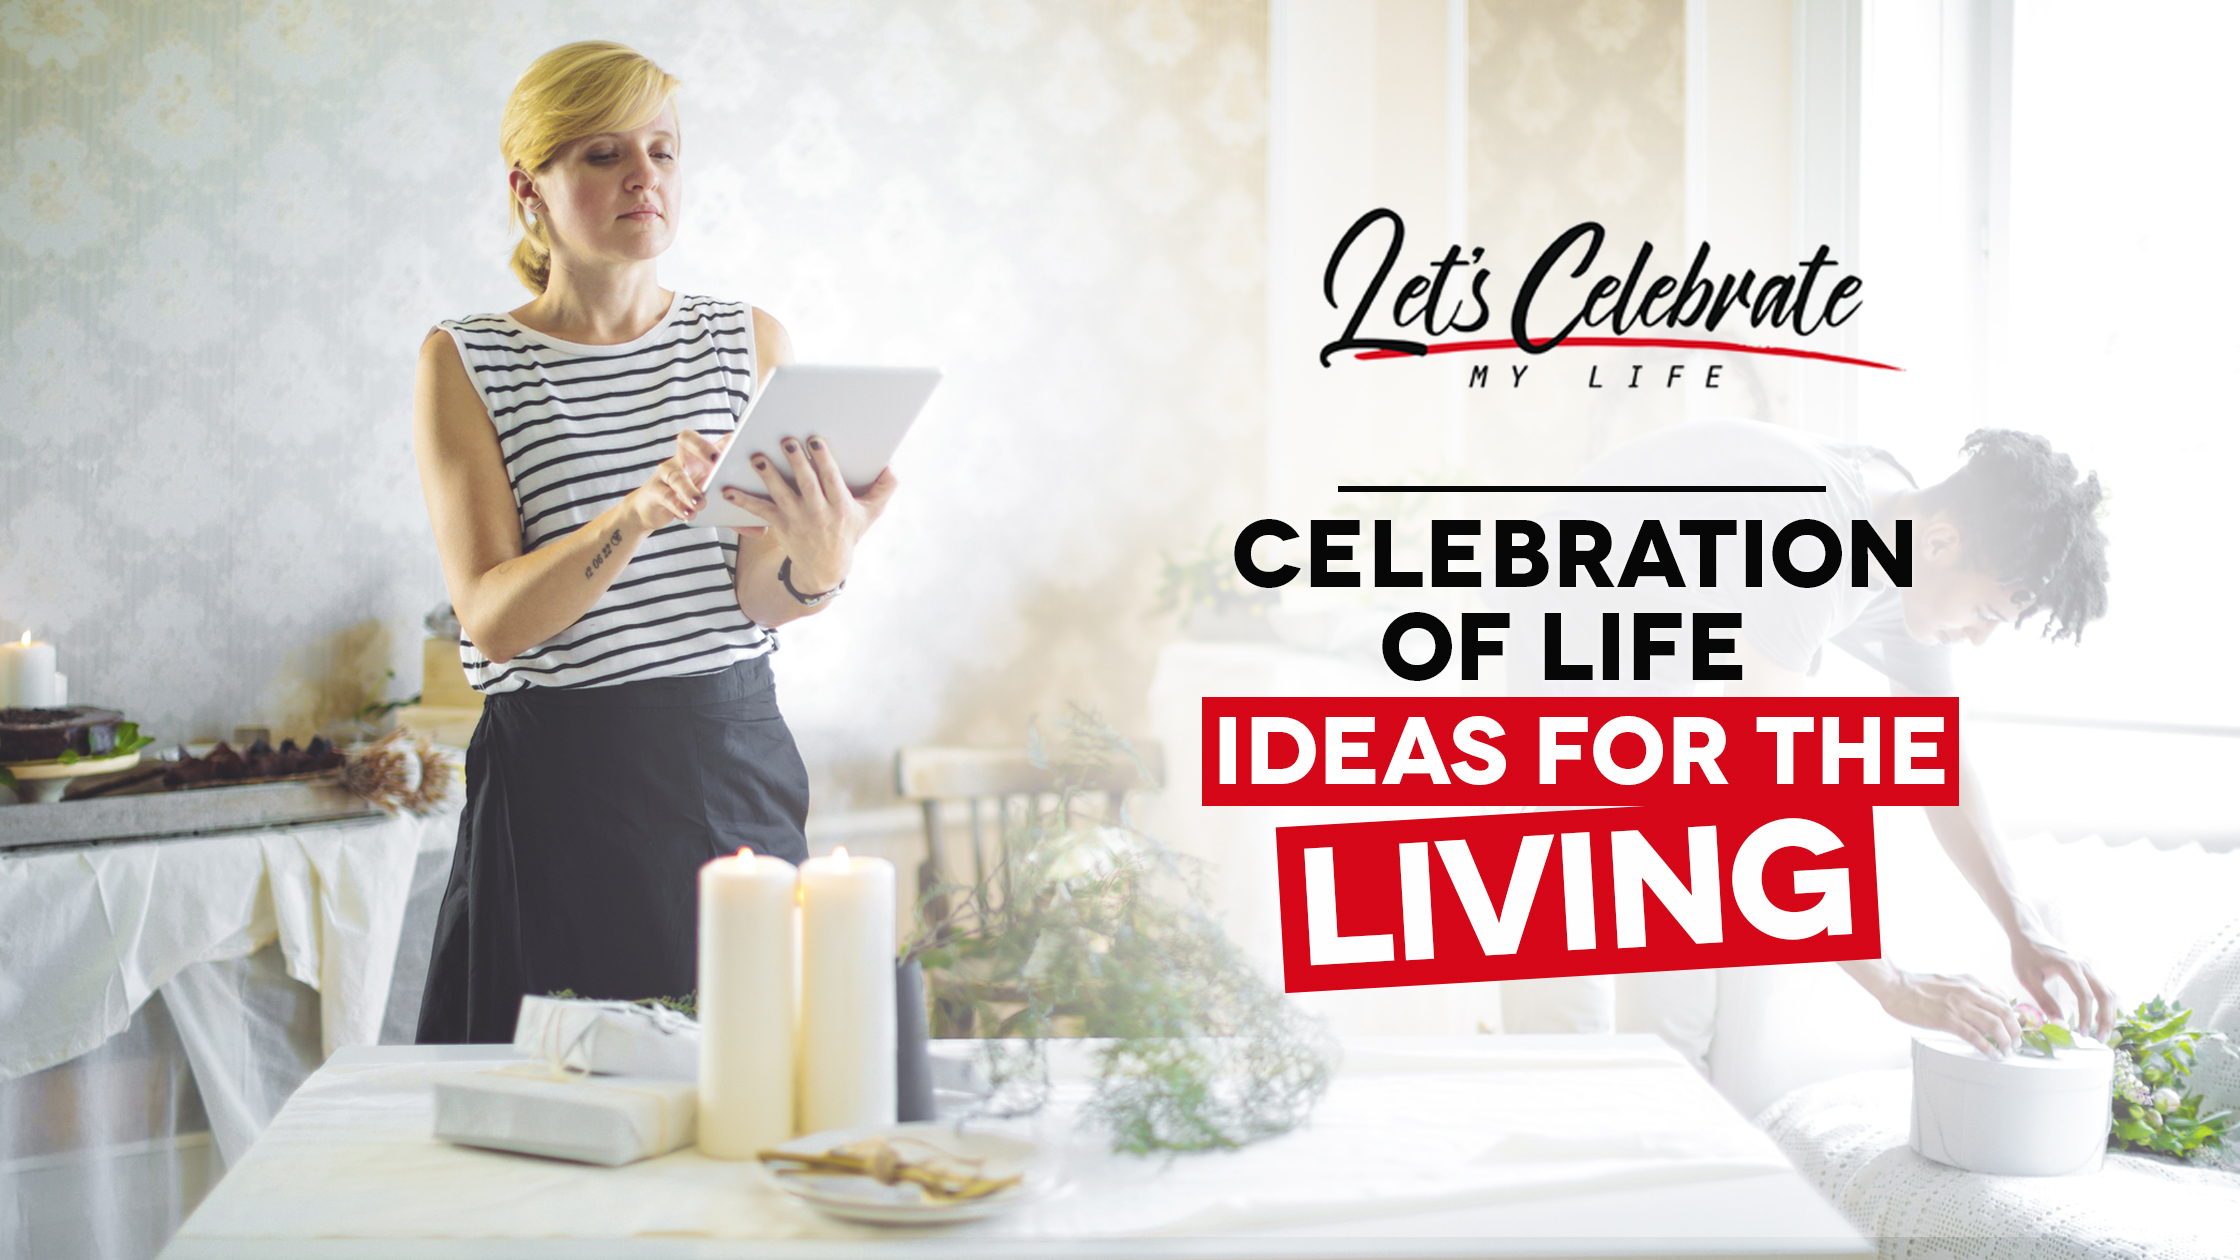 Celebration Of Life Ideas For The Living